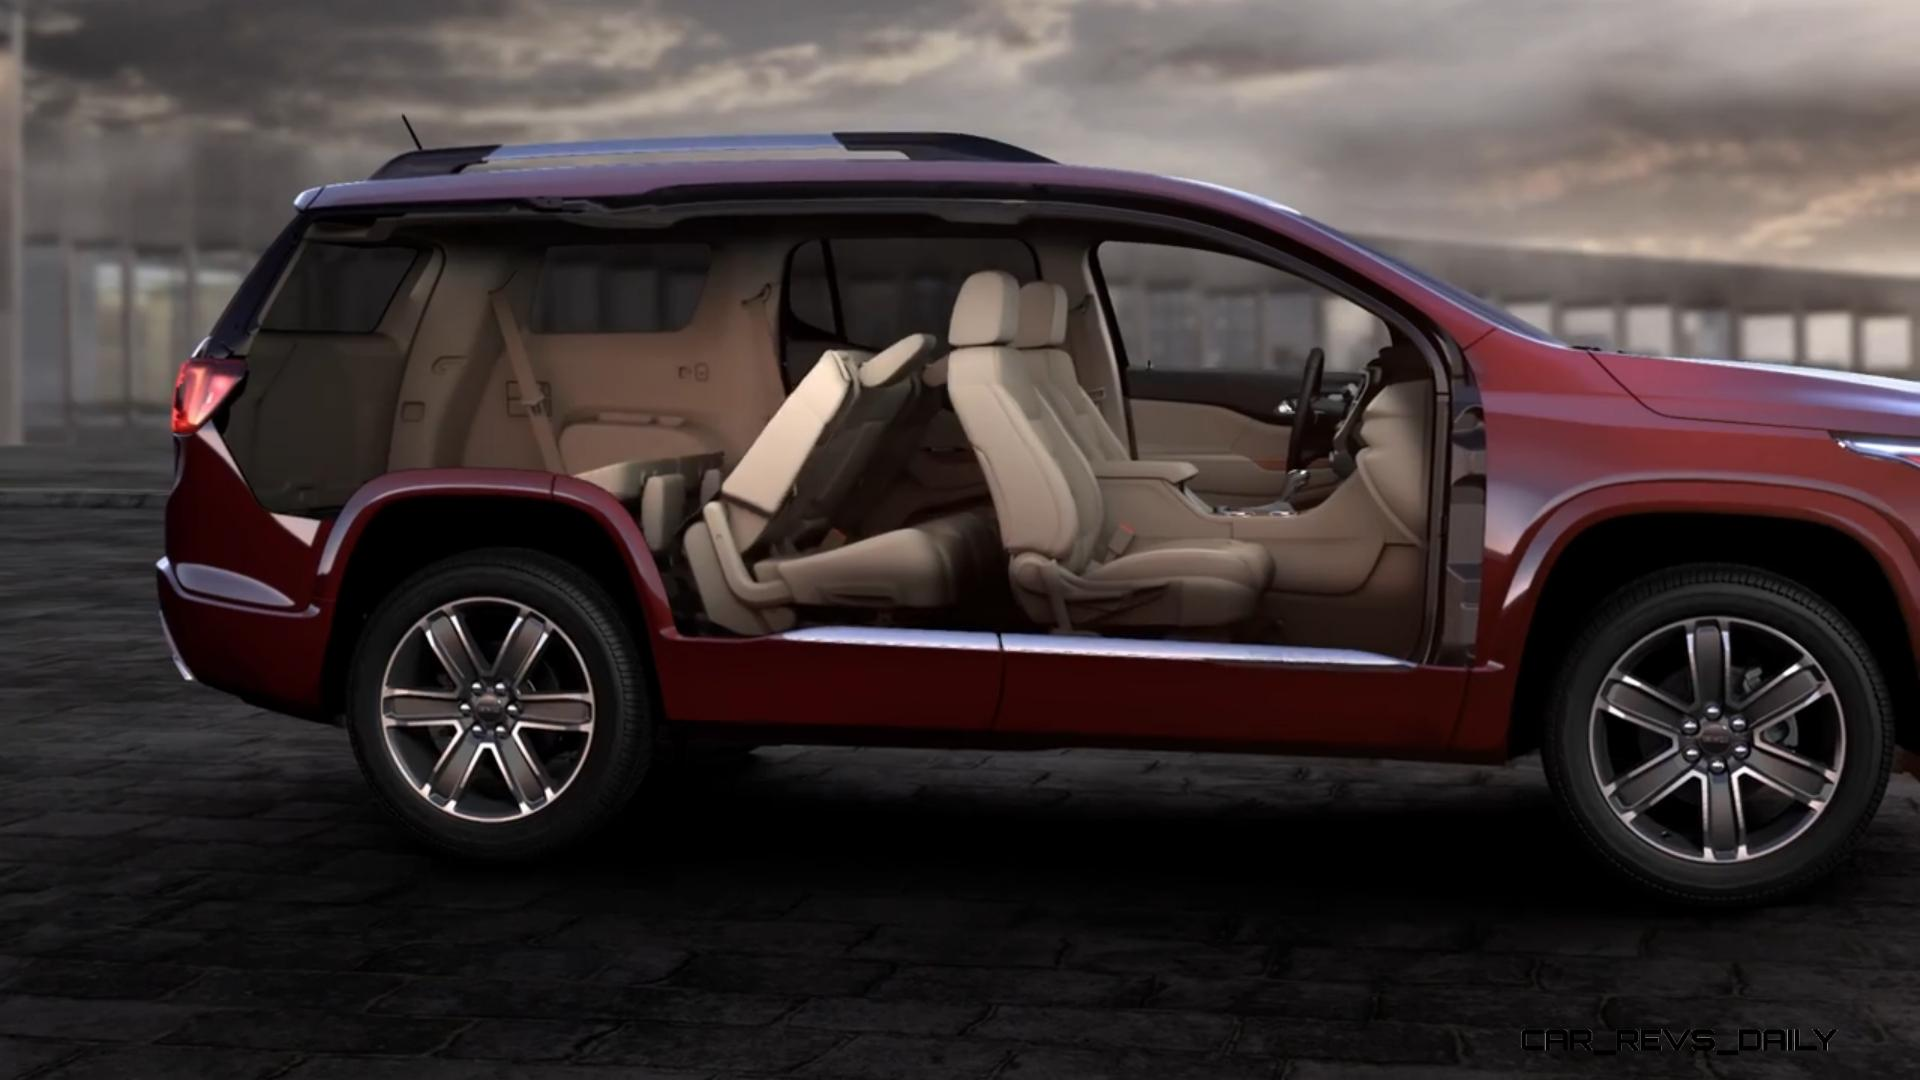 4 additionally Finally Gmc Brings An All New 2018 Terrain To The Detroit Auto Show C  DyjKND further Why Gm Should Put Wireless Connections In Its Trucks additionally Infiniti 2016 Qx60 Interior in addition Pictures 2018 Gmc Terrain Terrain Denali Photos Gallery 1 2940642. on gmc terrain interoir